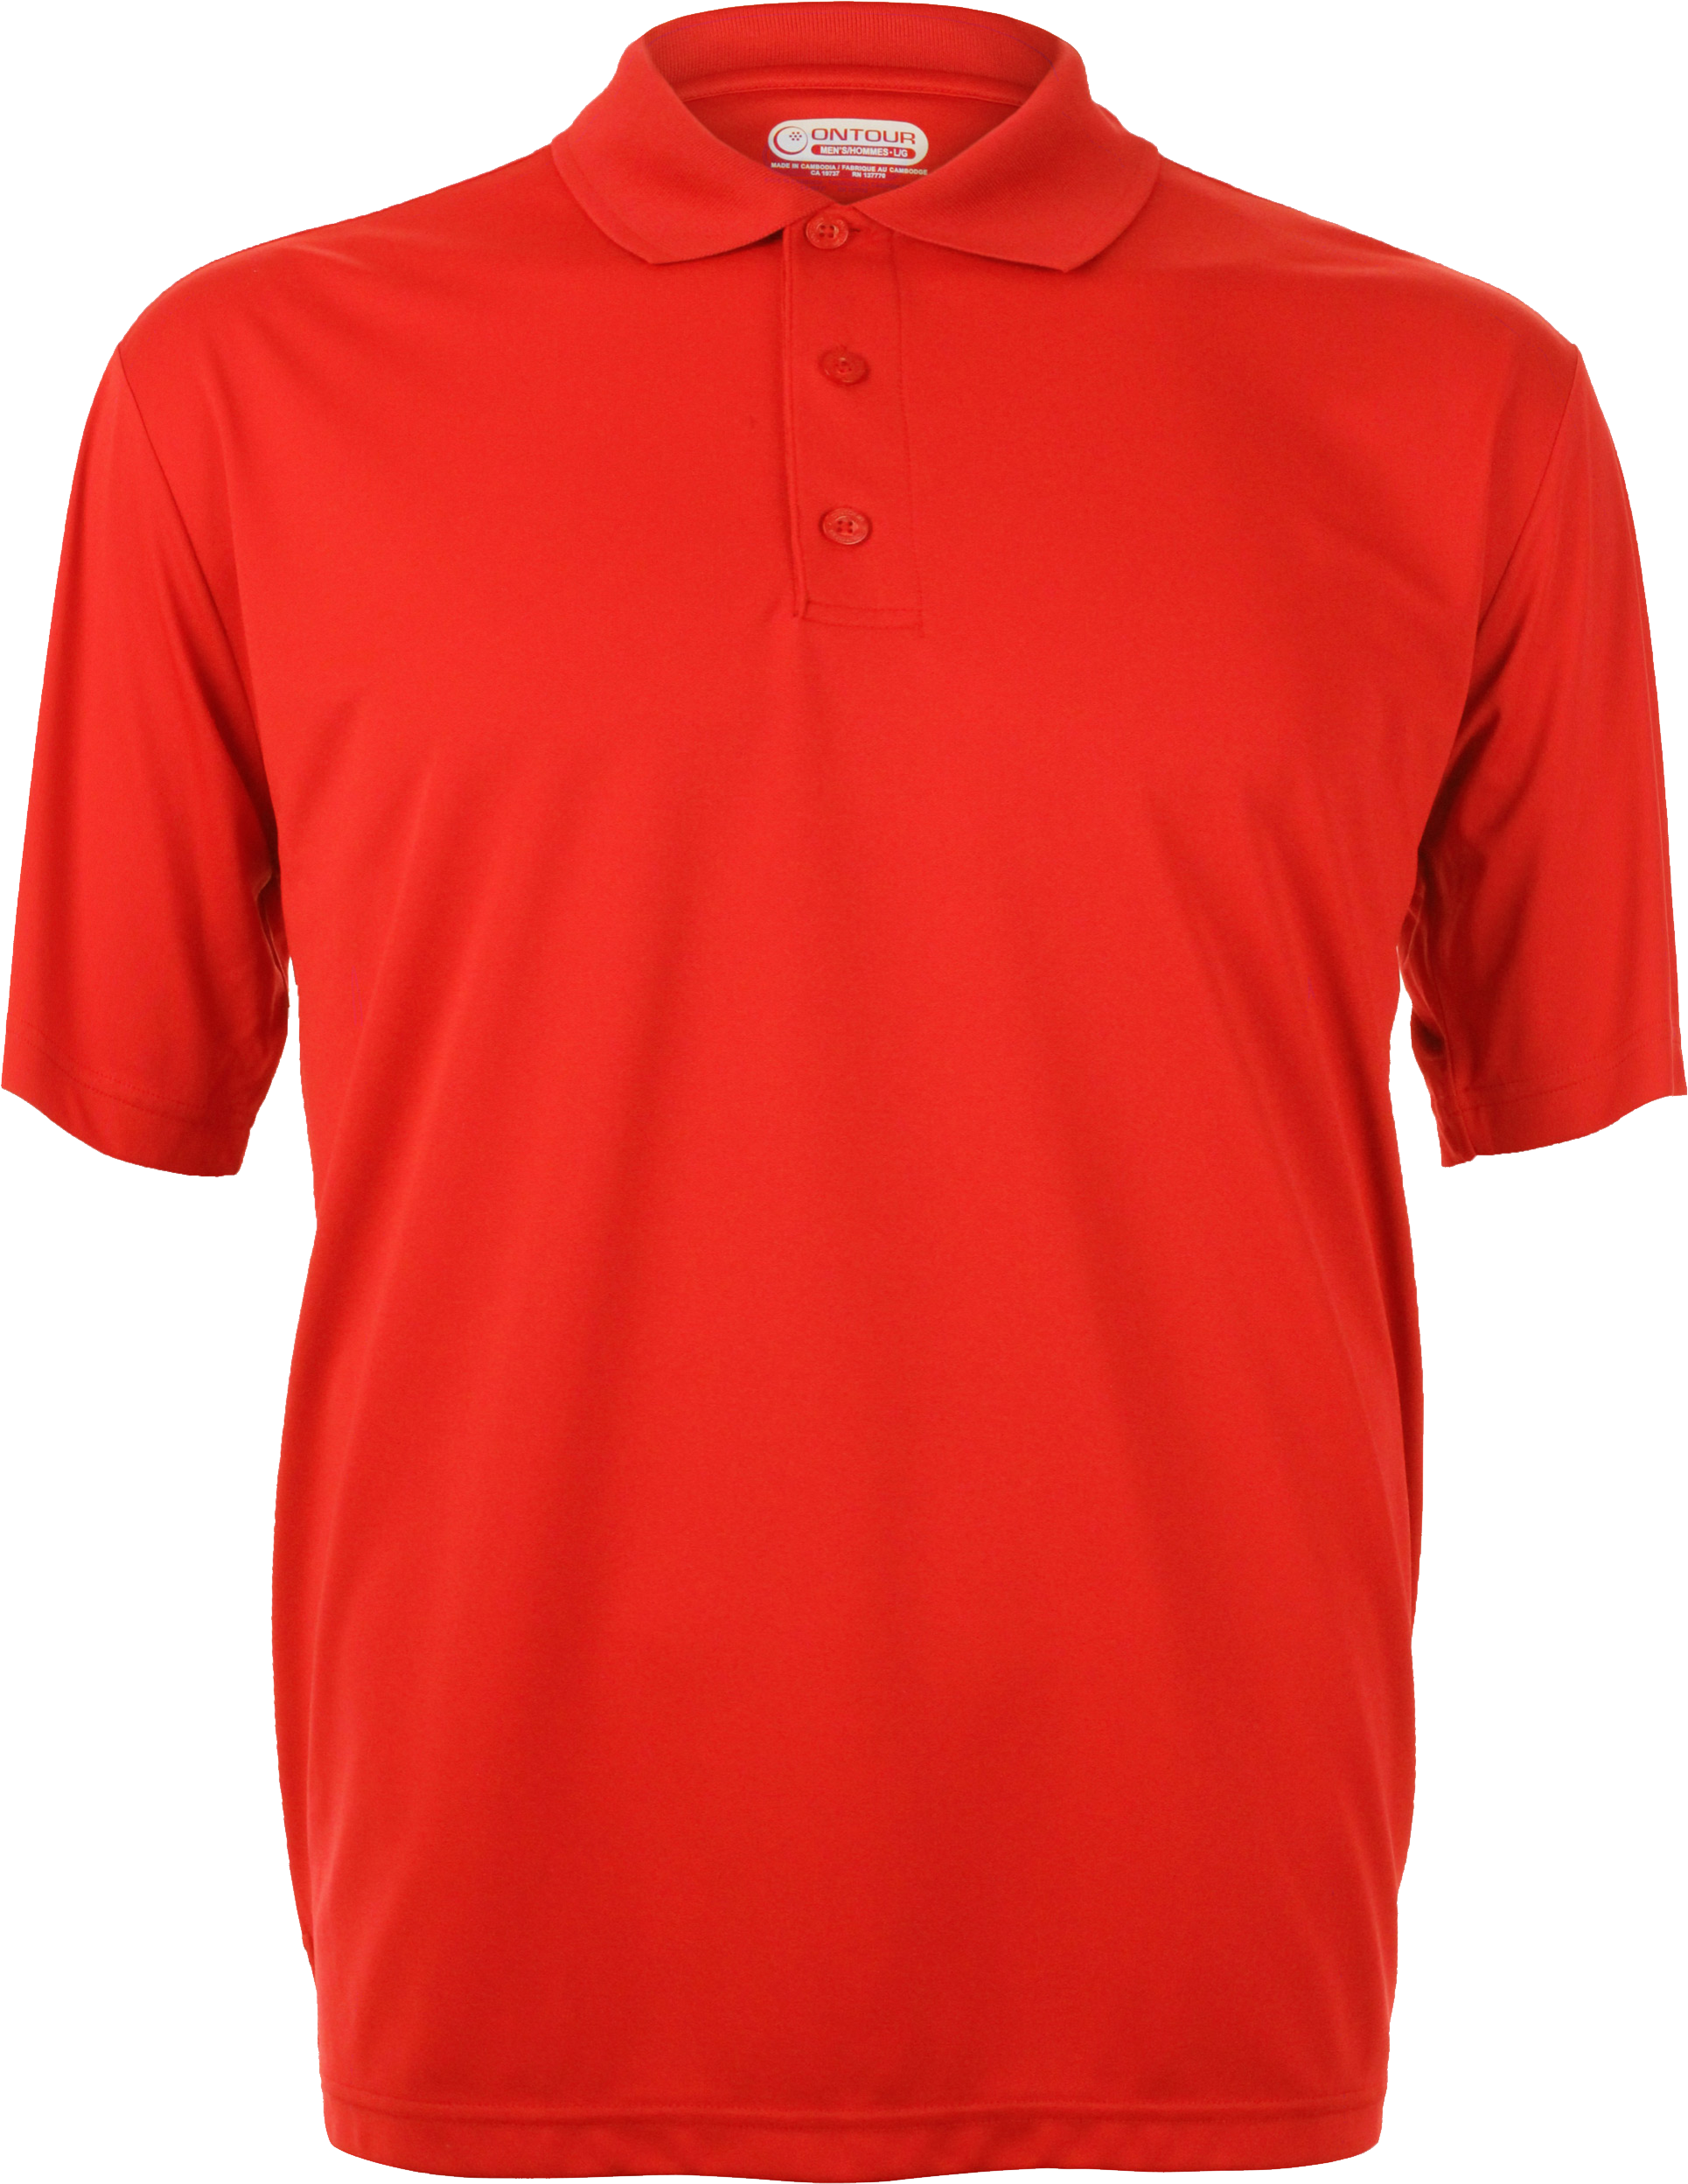 Red Polo Shirt PNG Image